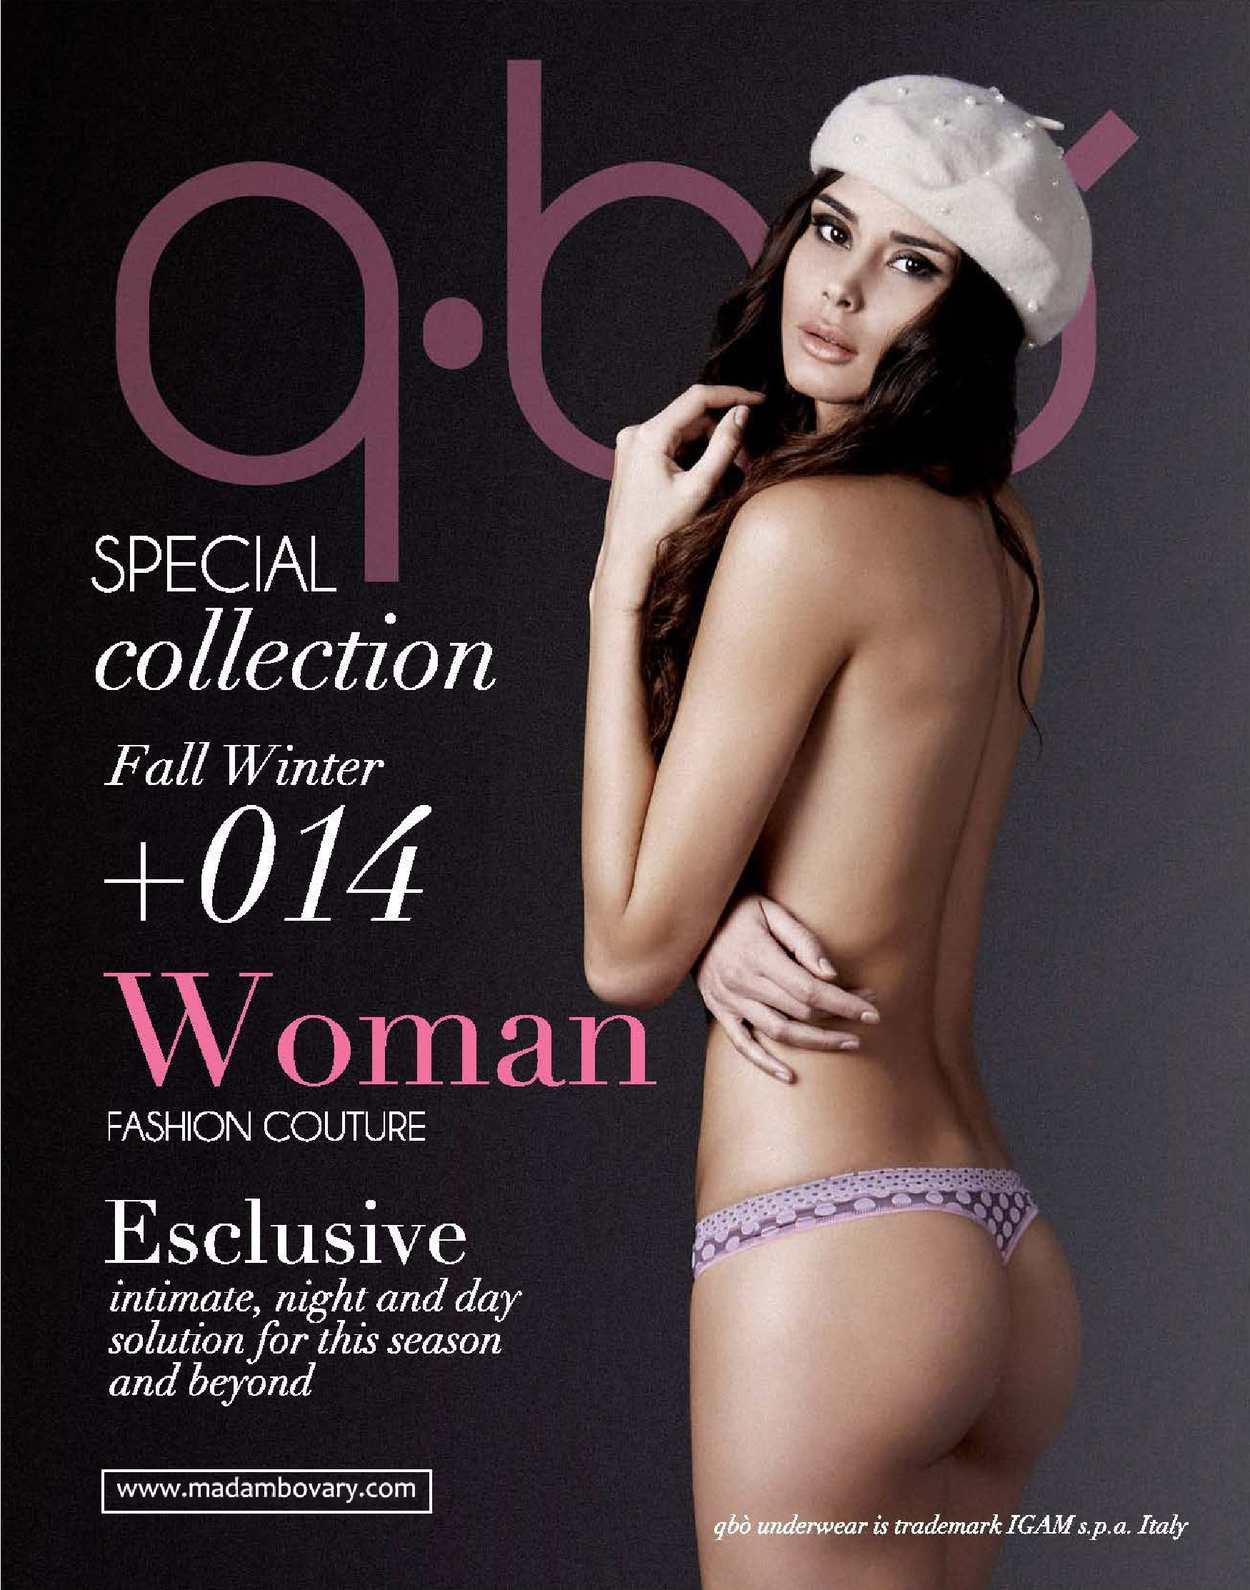 QBO Underwear for Men & Women Collection 2014/15 Made in Italy.